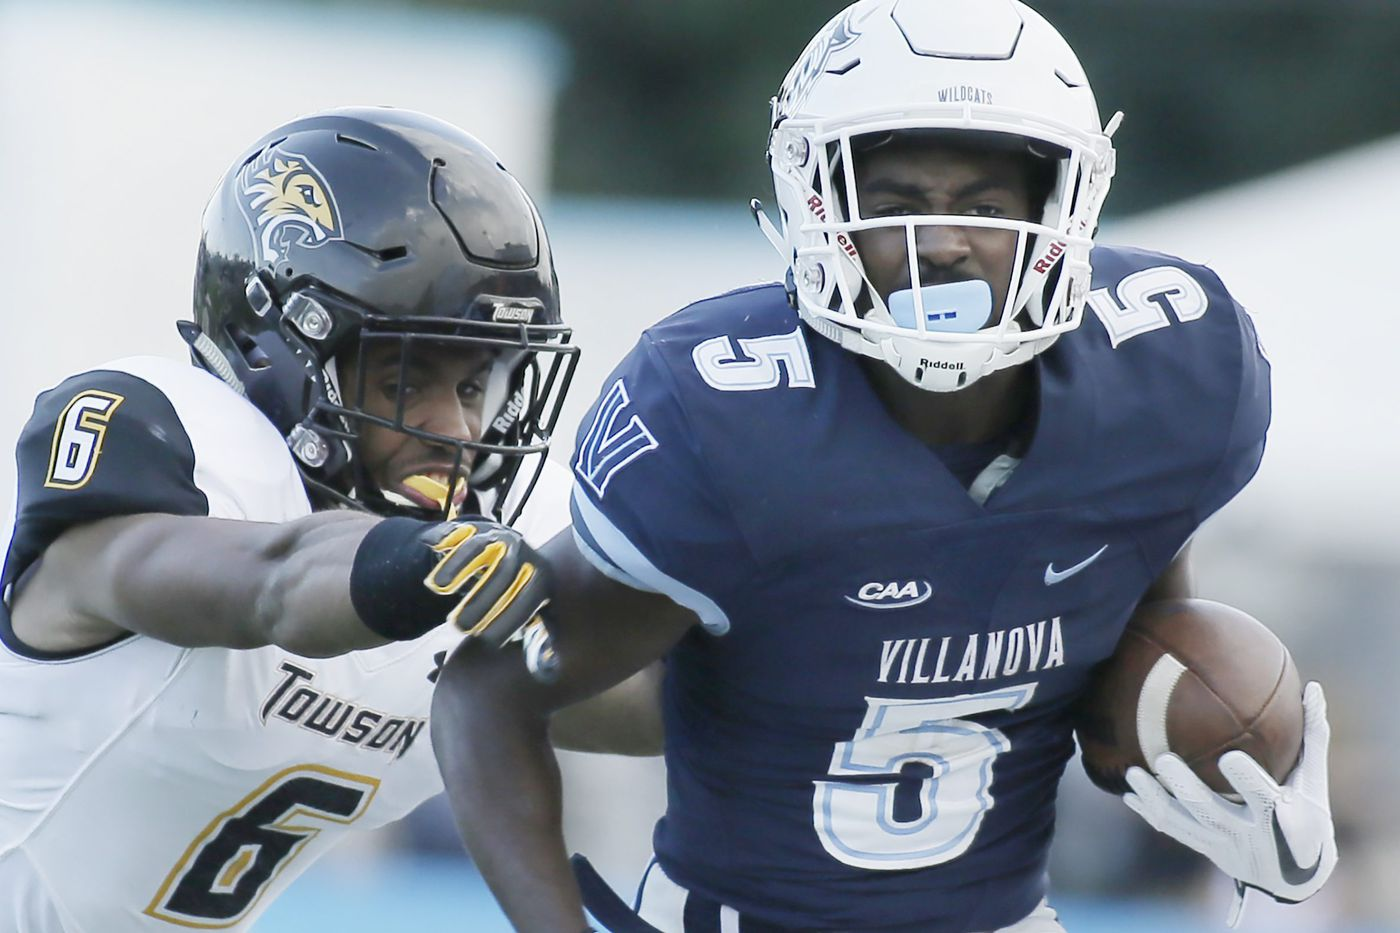 After quick start, Villanova gets swamped in 45-35 loss to Towson